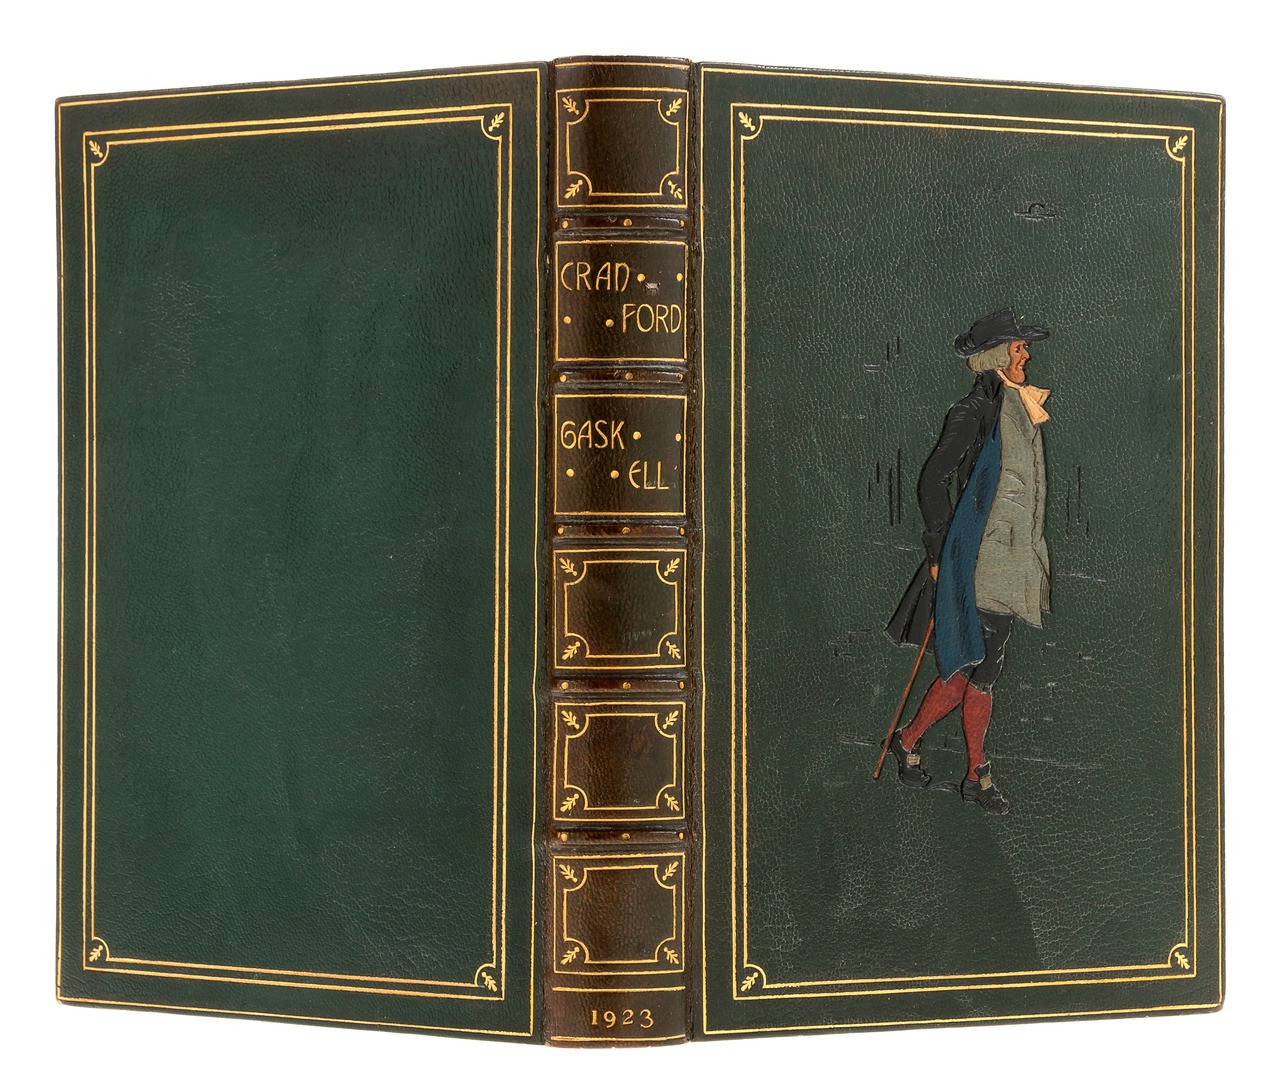 Cranford by Mrs. Gaskell, 1923, Signed Kelliegram Inlaid Leather Binding